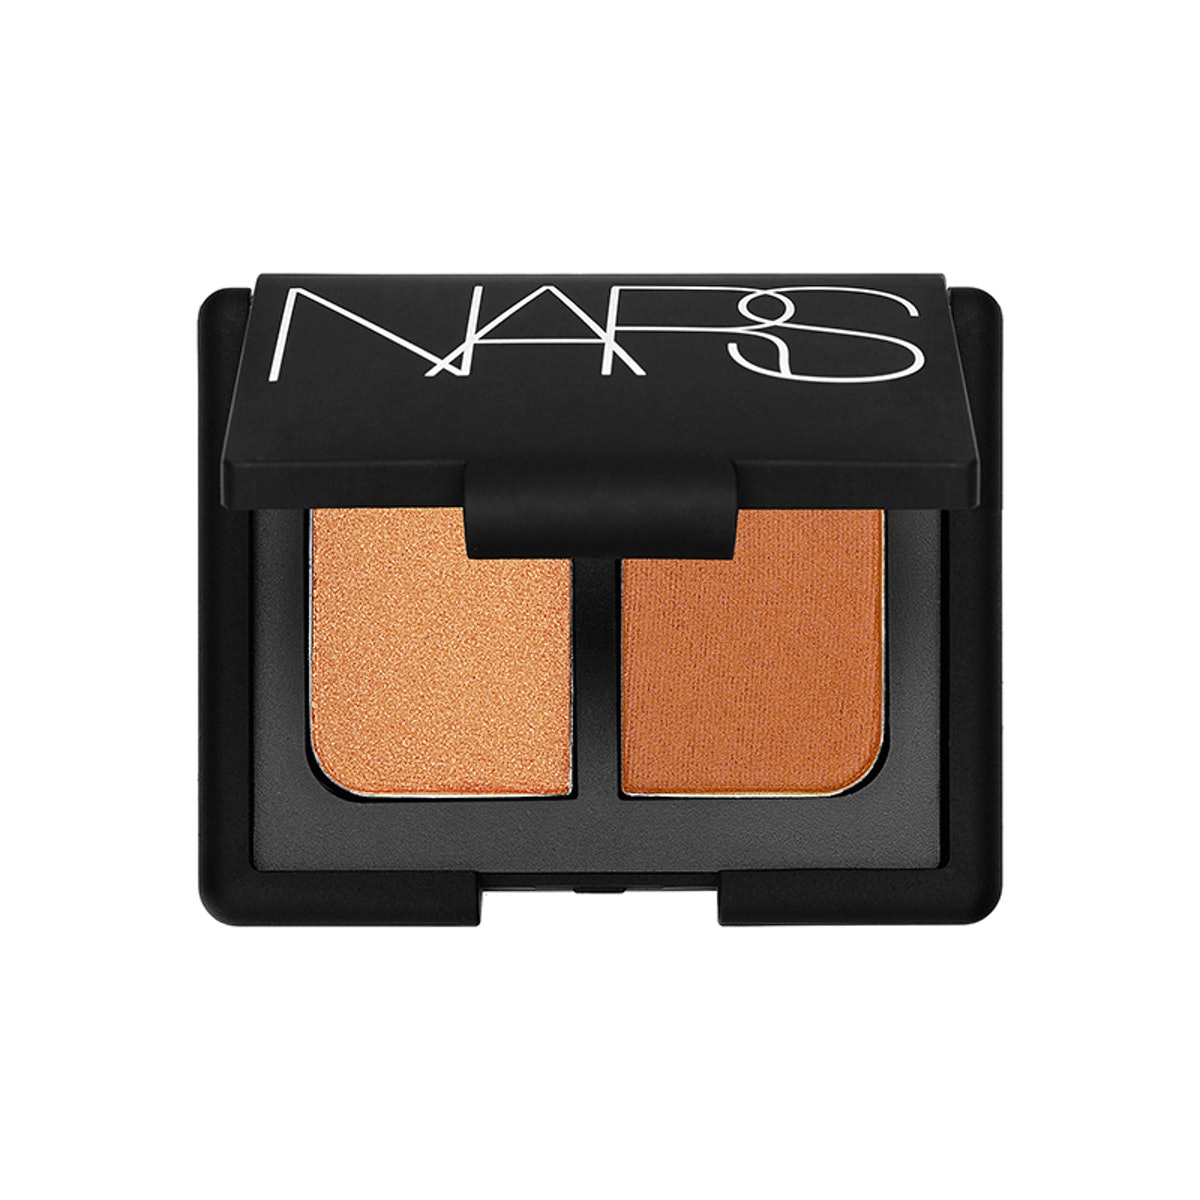 Duo Eyeshadow In Isolde And Shimmering Copper